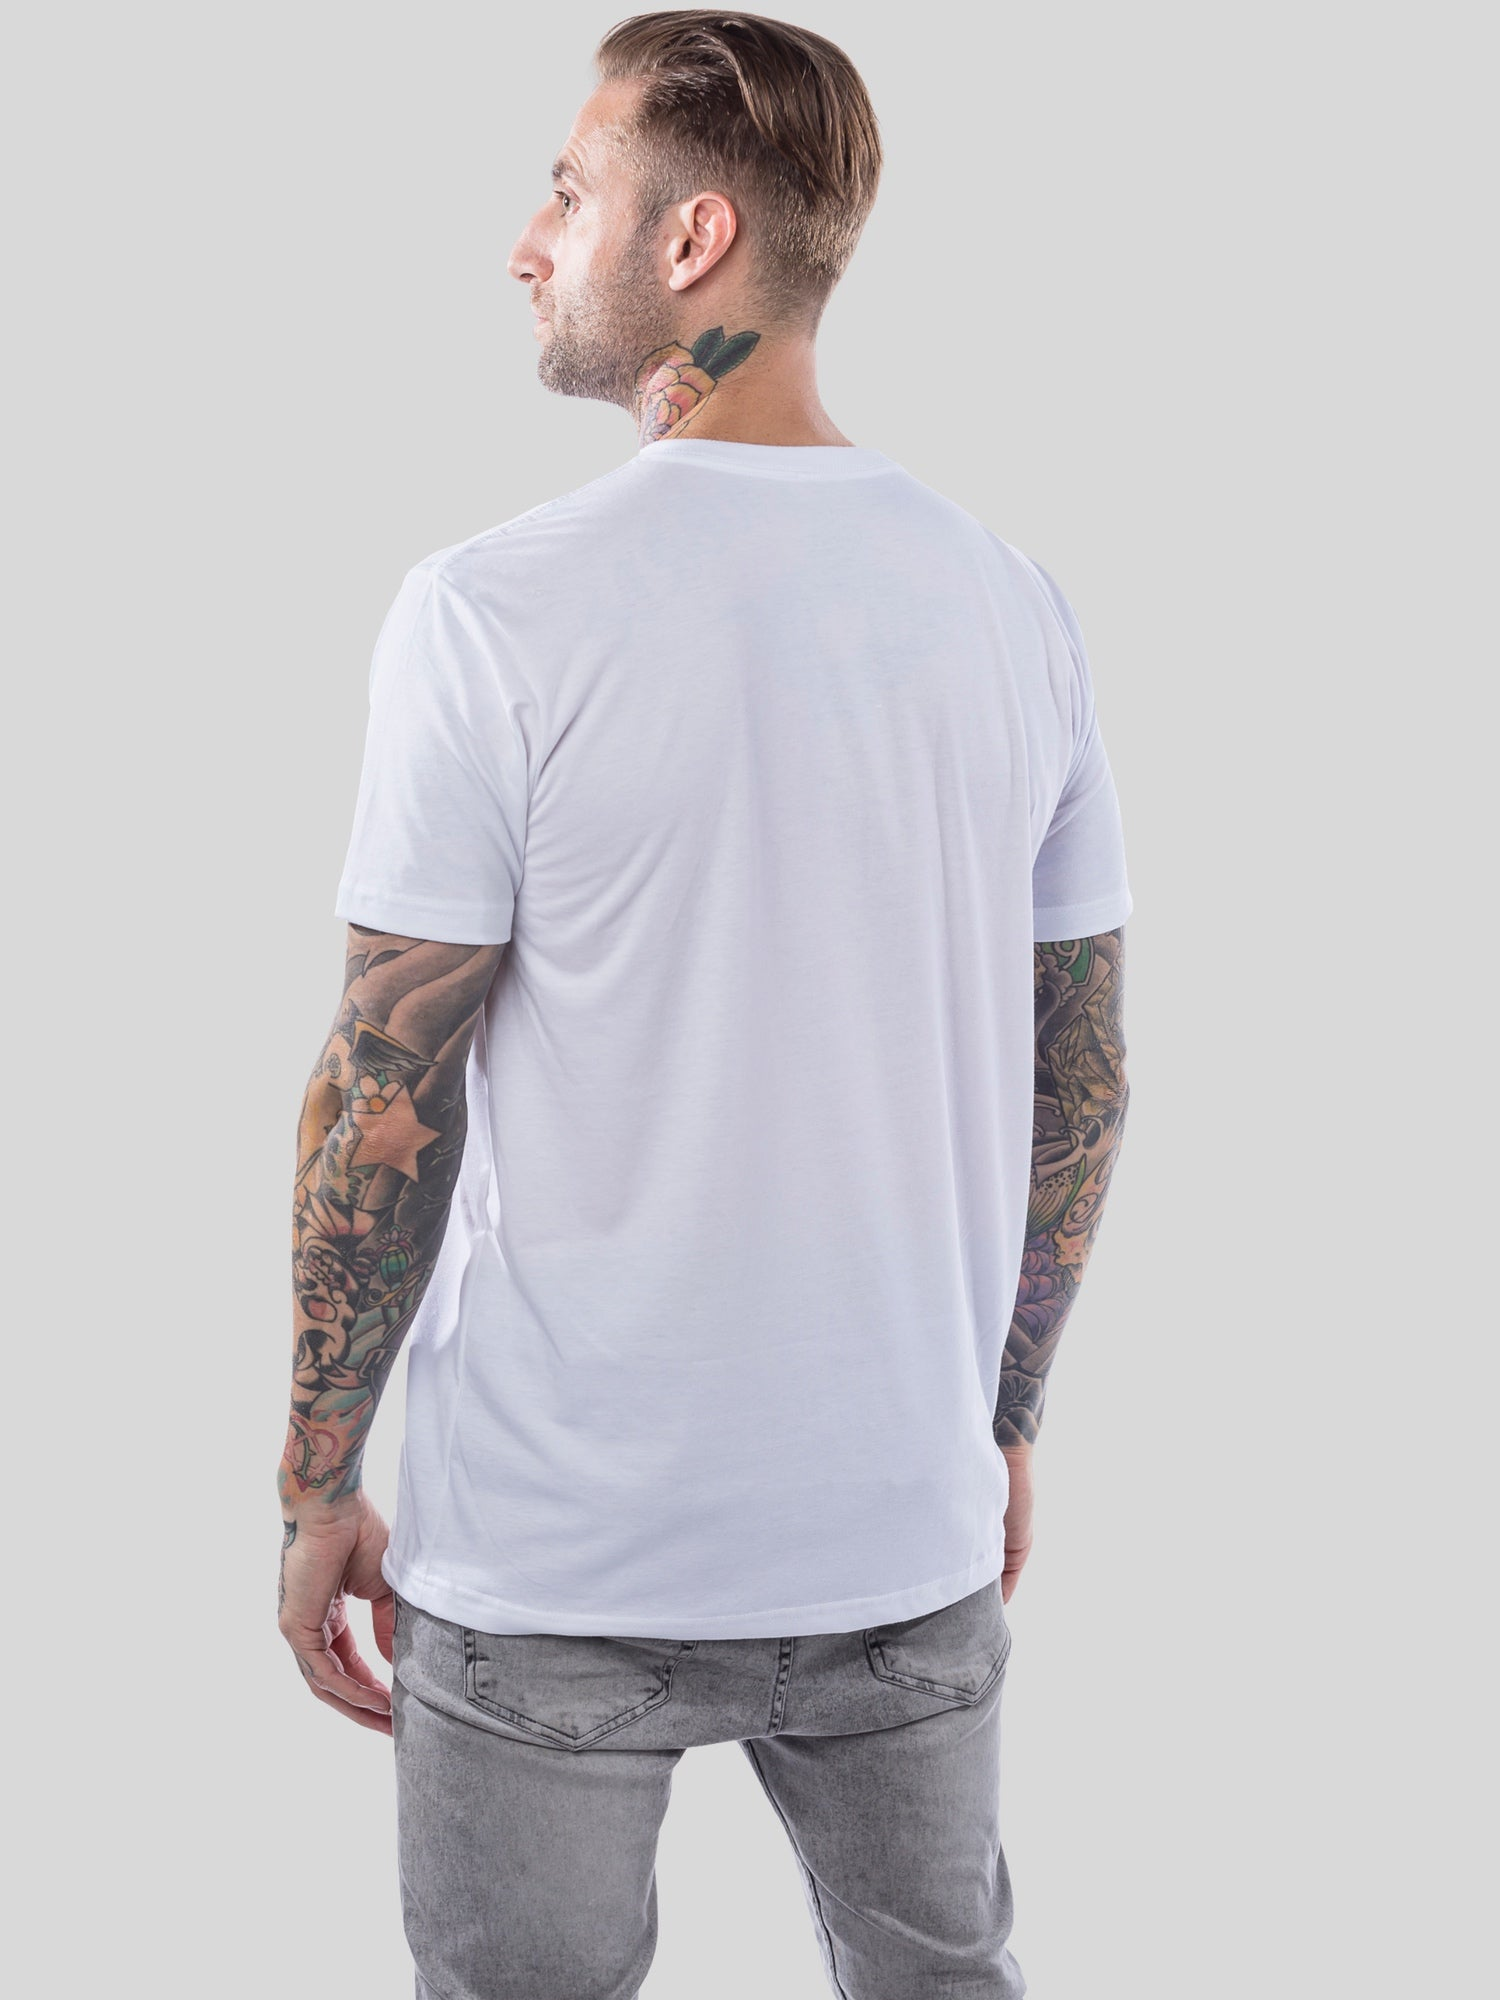 White & Grey 3-Pack